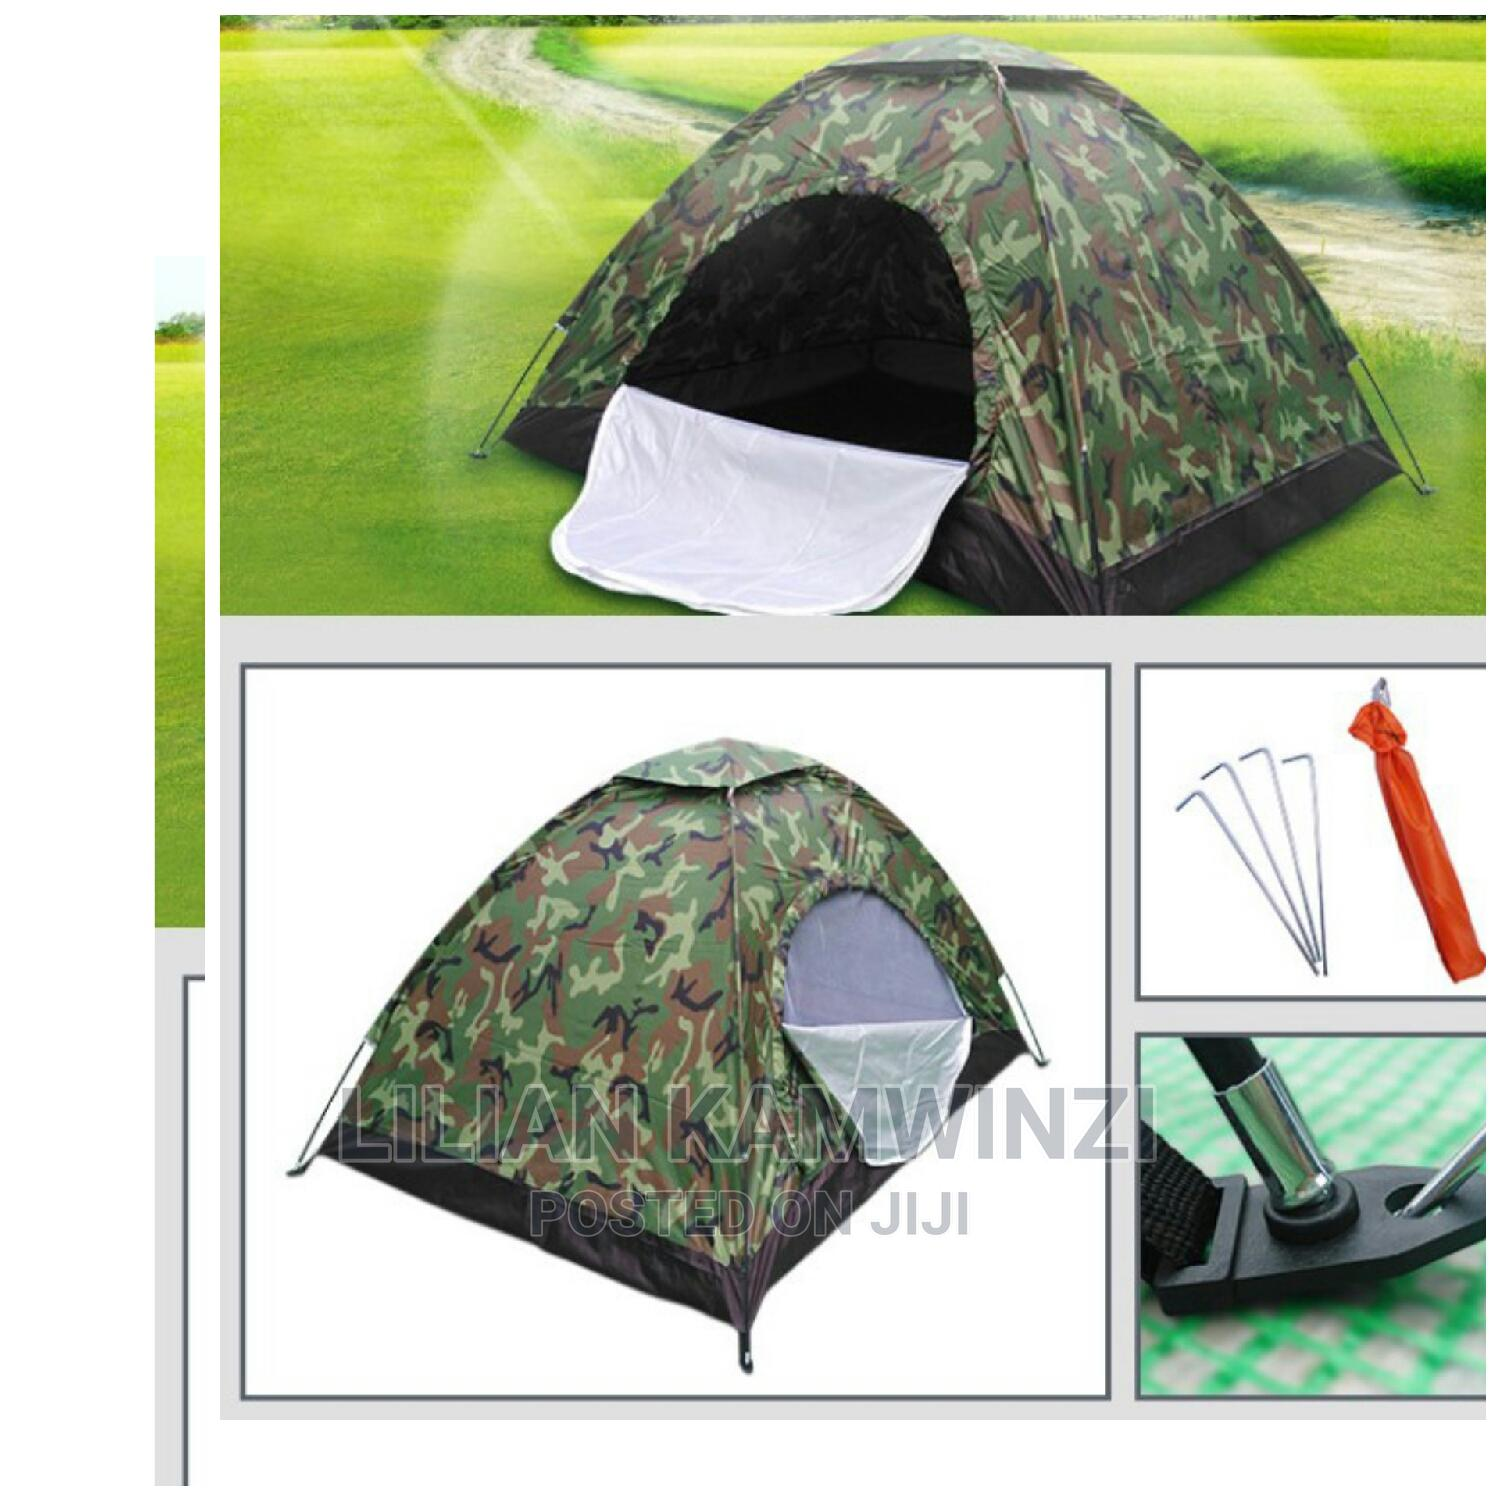 6 People Outdoor Camping Tent